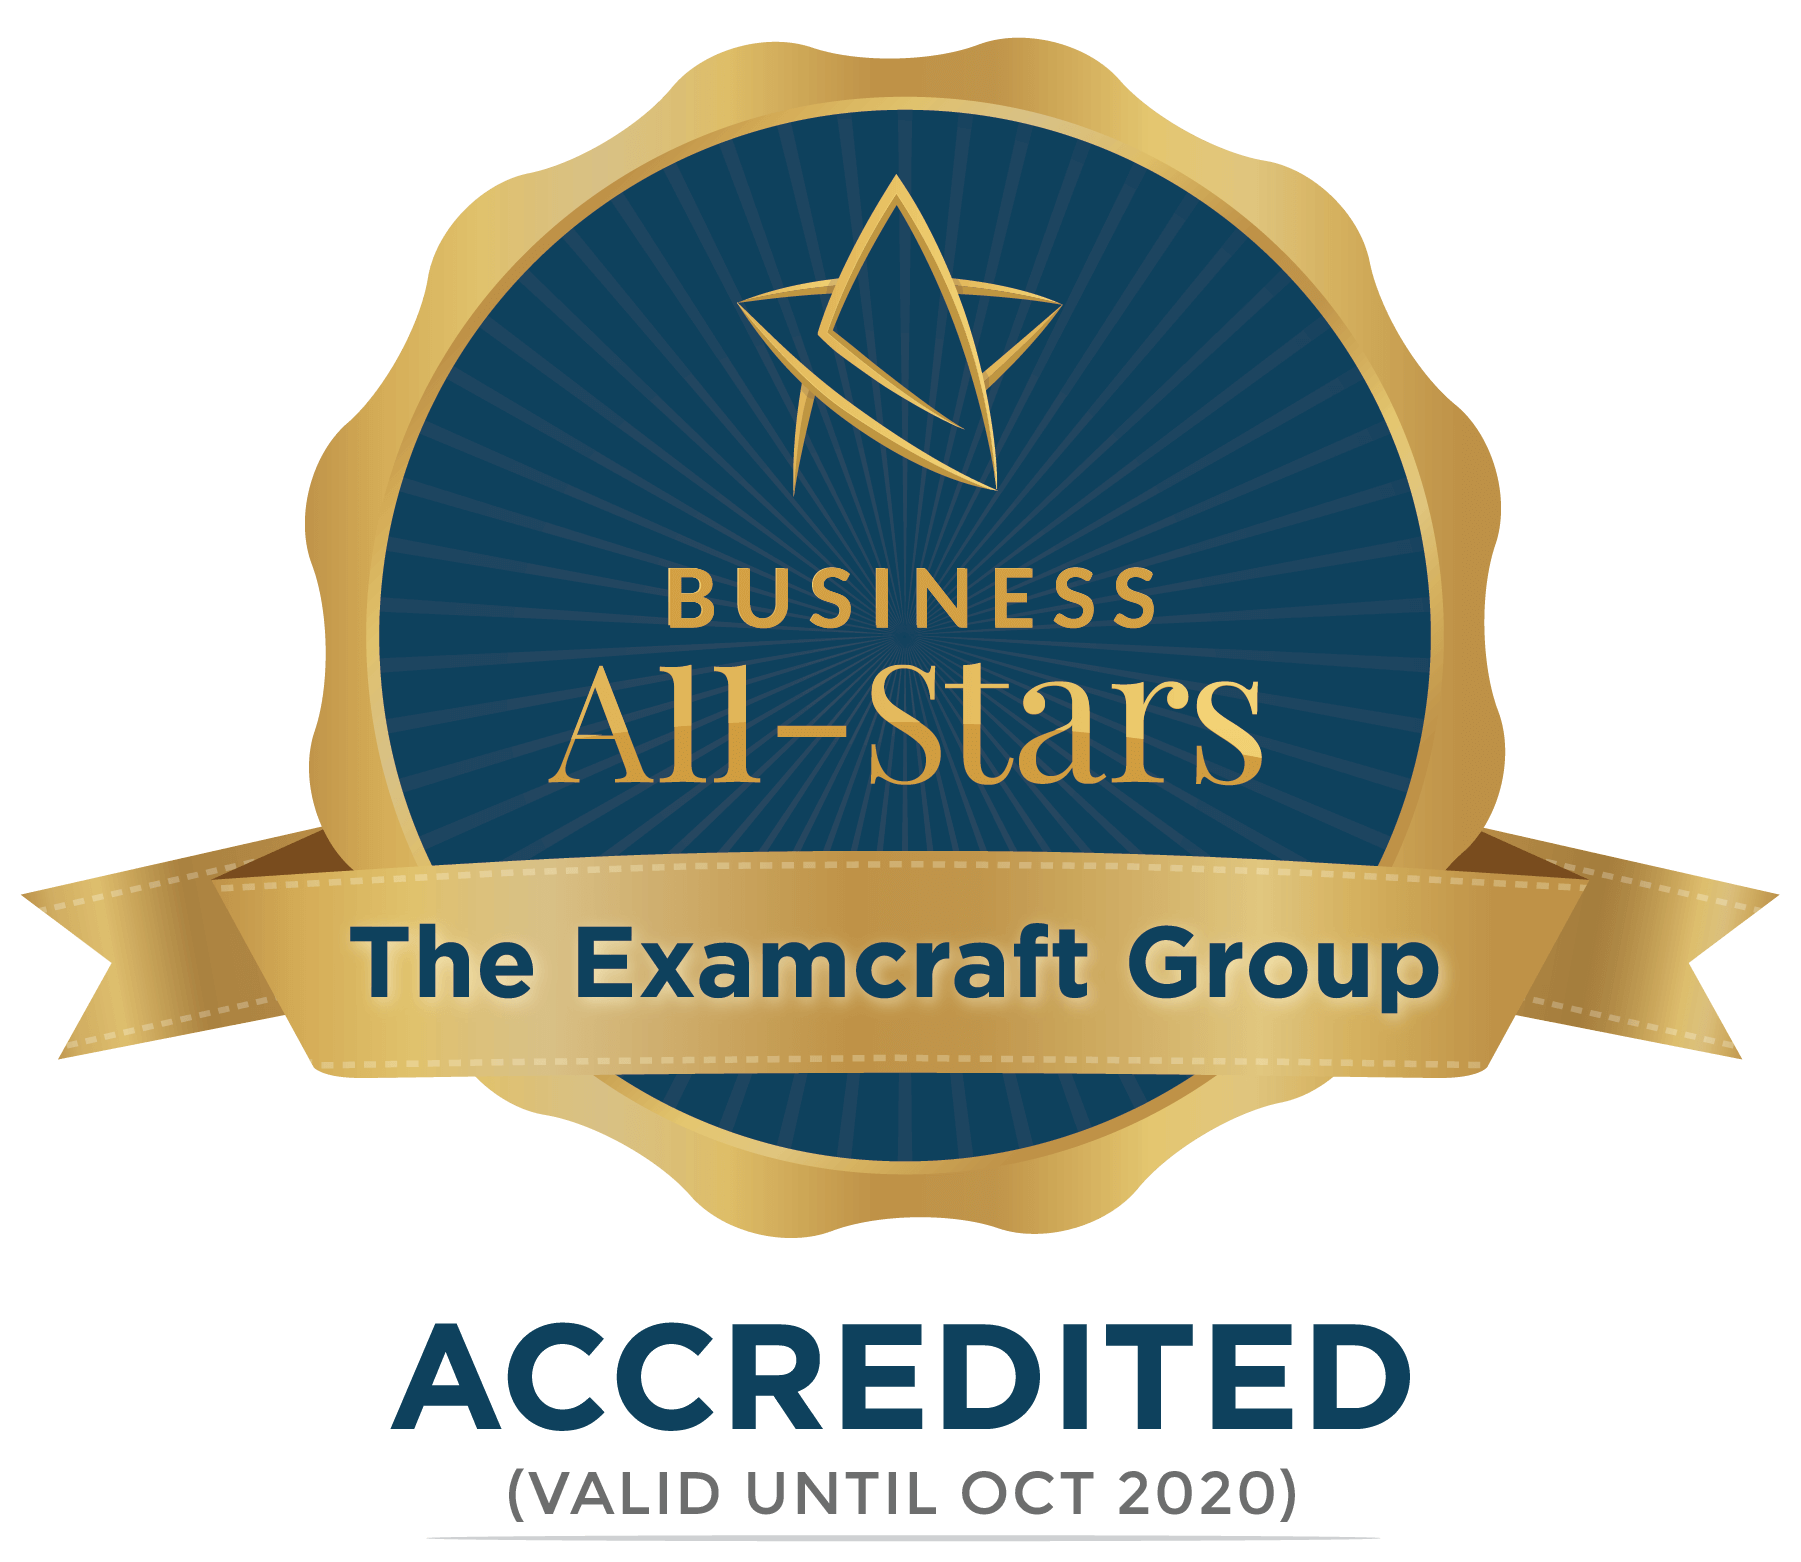 The Examcraft Group - Business All-Stars Accreditation